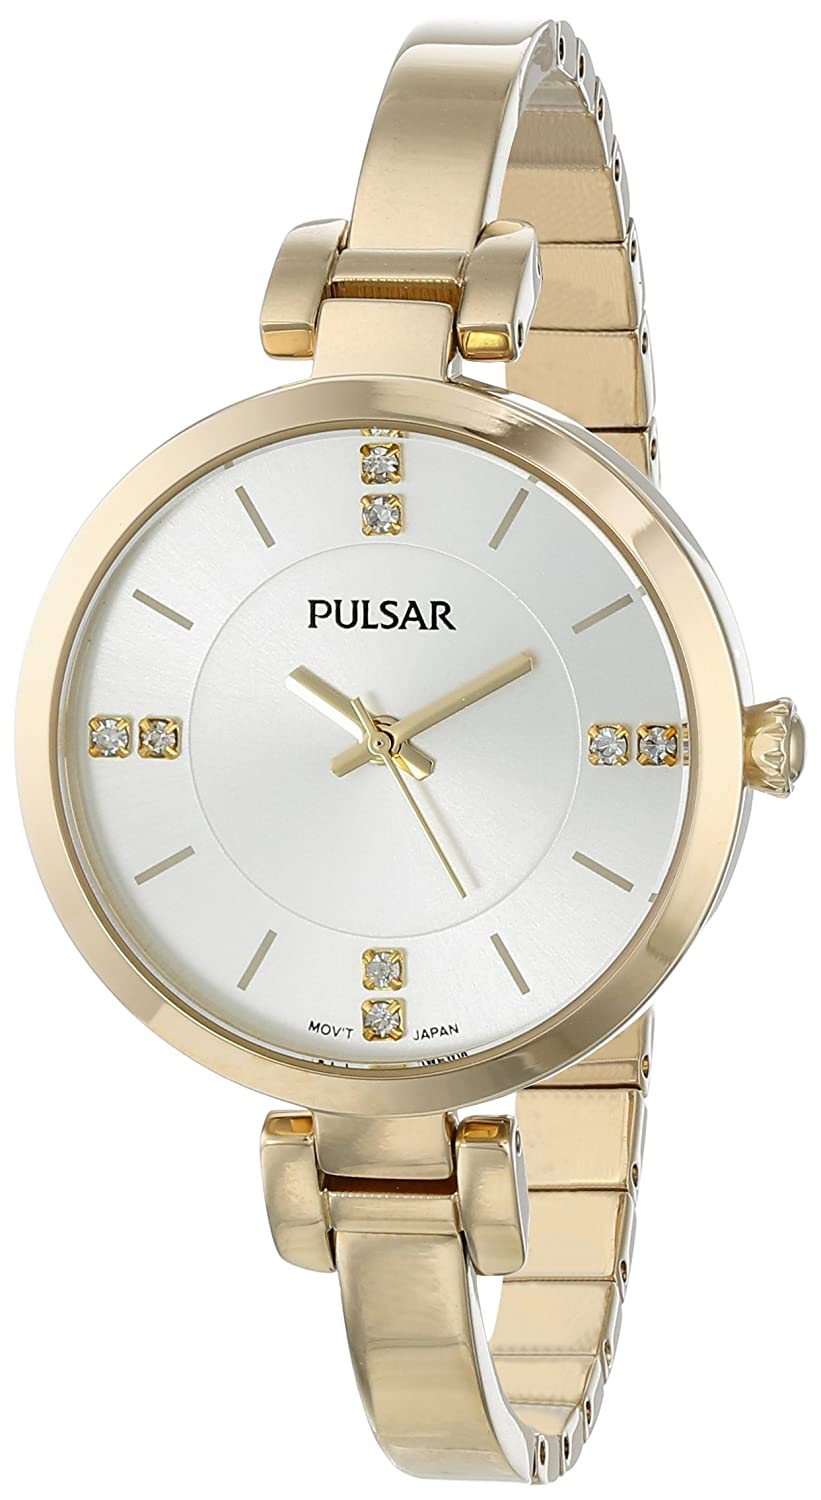 Pulsar Women s PH8034 Crystal-Accented Gold-Tone Watch with Link Bracelet